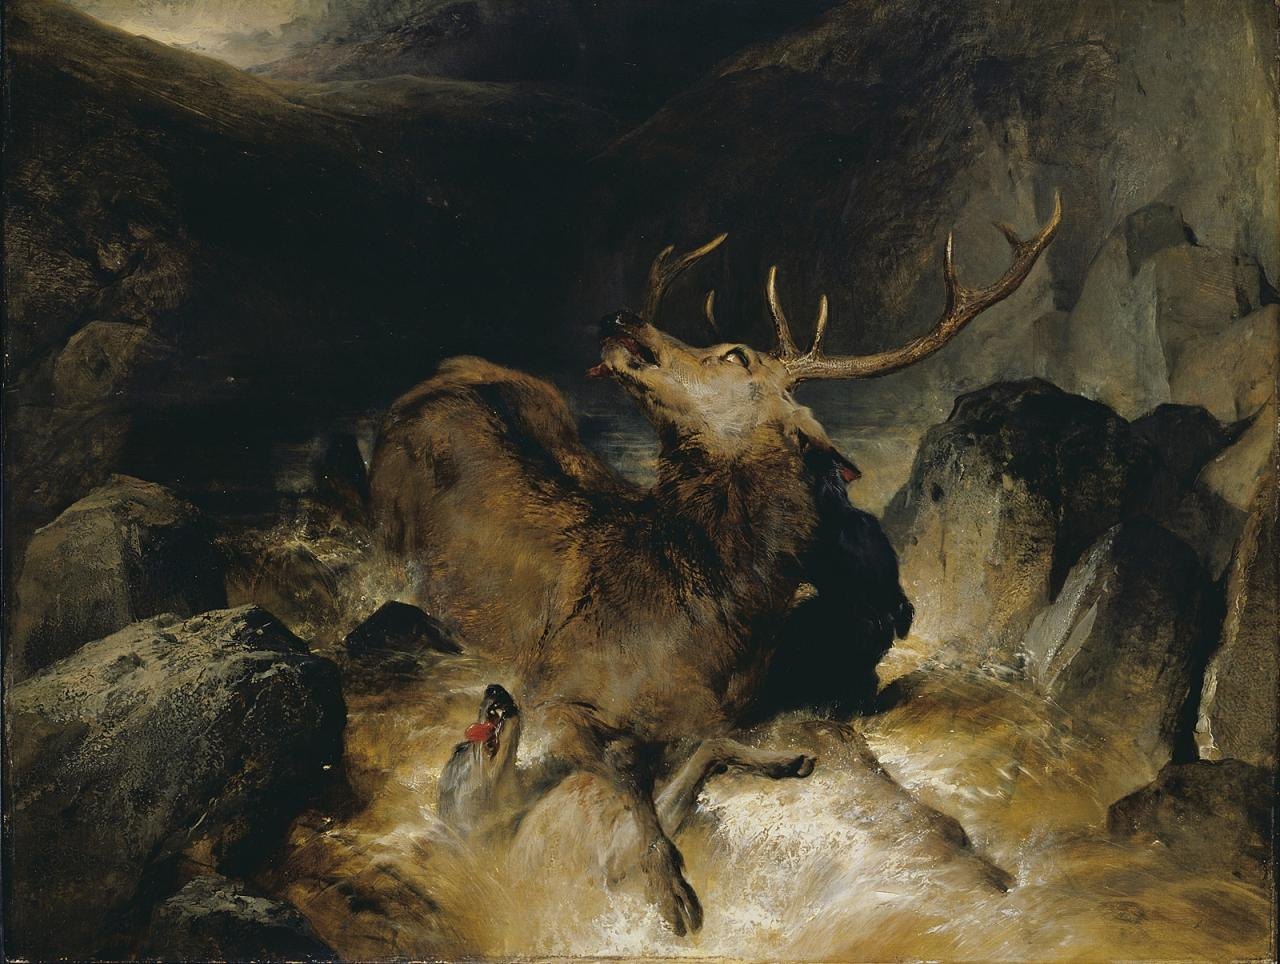 Edwin Henry Landseer,Deer and Deer Hounds in a Mountain Torrent ('The Hunted Stag') image